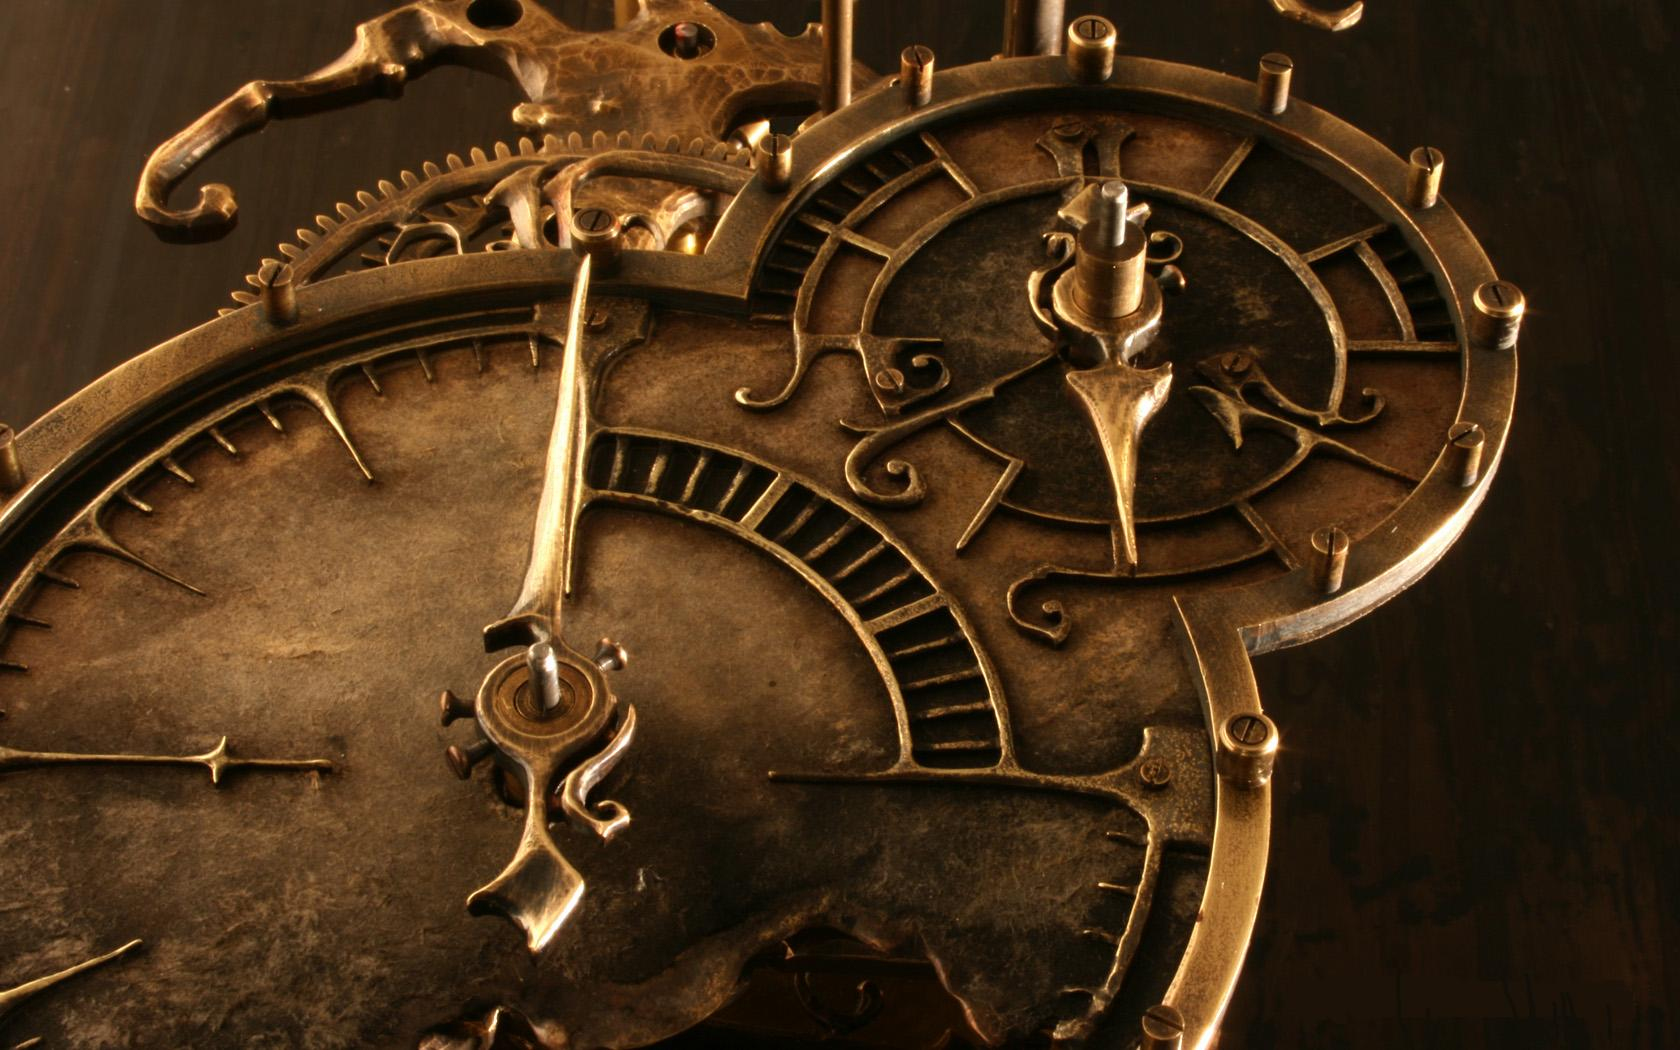 Steampunk Brown Wallpaper 1680x1050 Steampunk Brown Clocks Gears 1680x1050